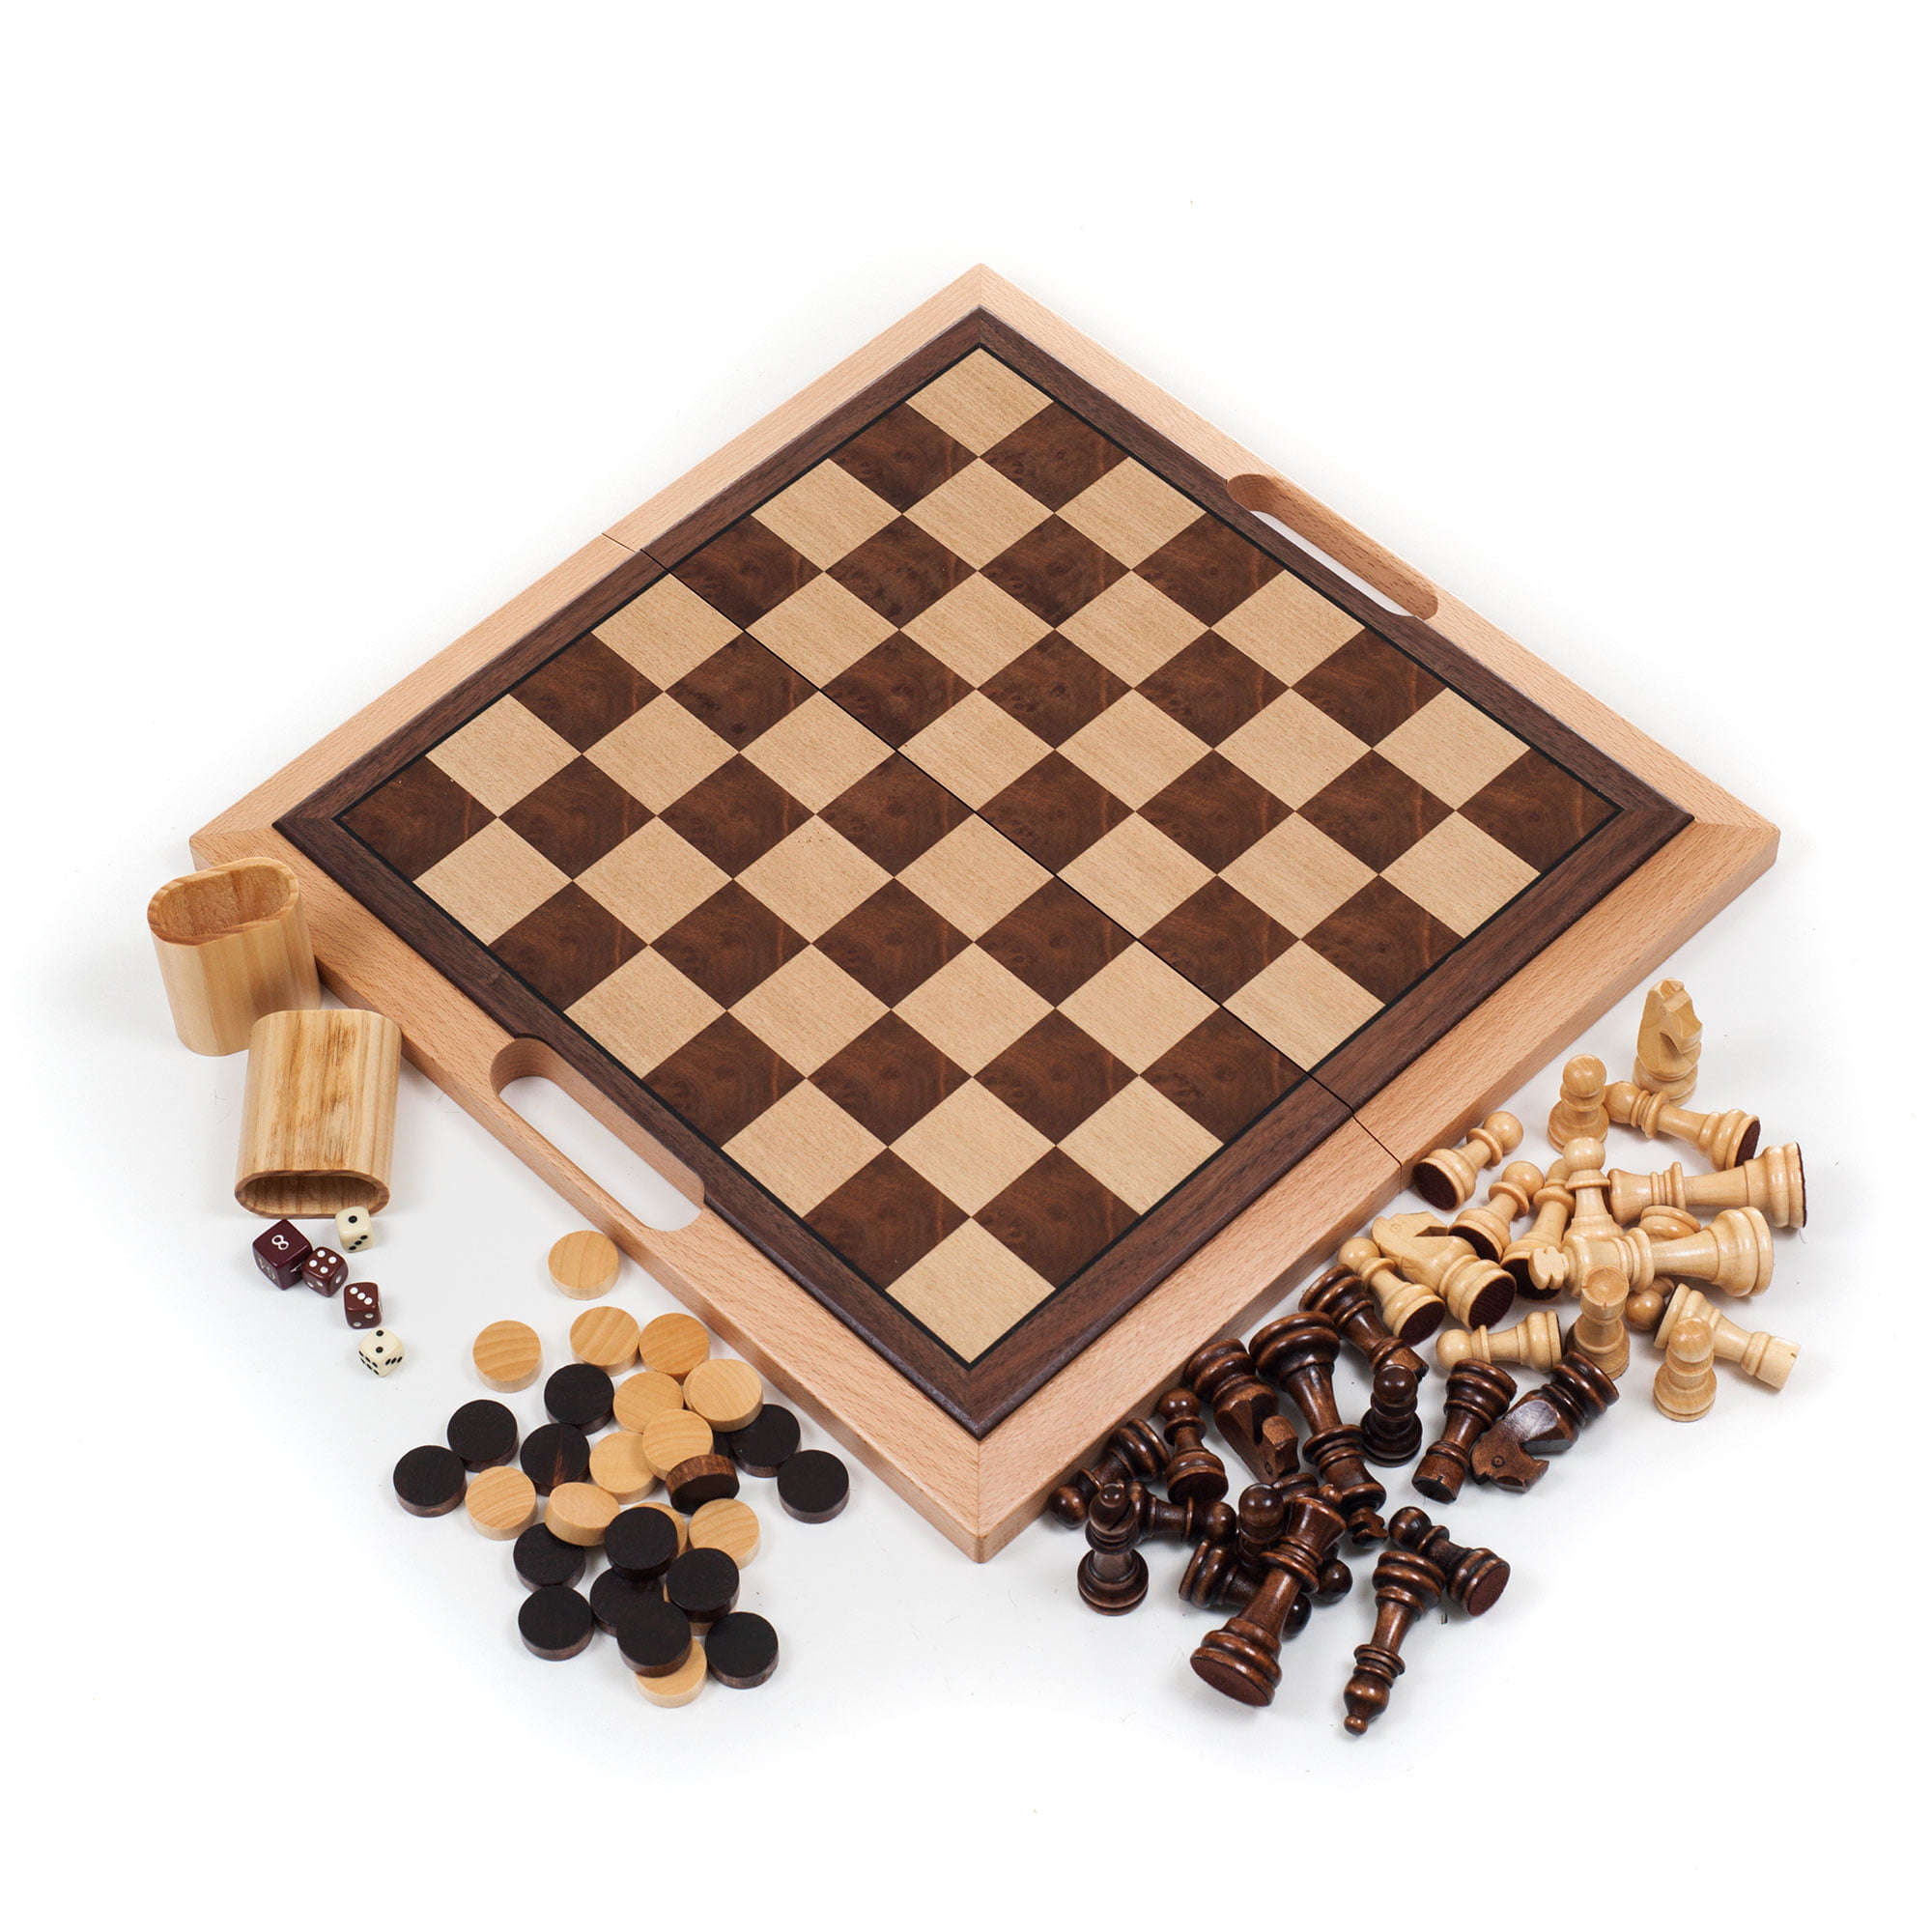 Deluxe Wooden 3-in-1 Chess Set, Backgammon & Checker Set by Hey! Play! by Trademark Global LLC